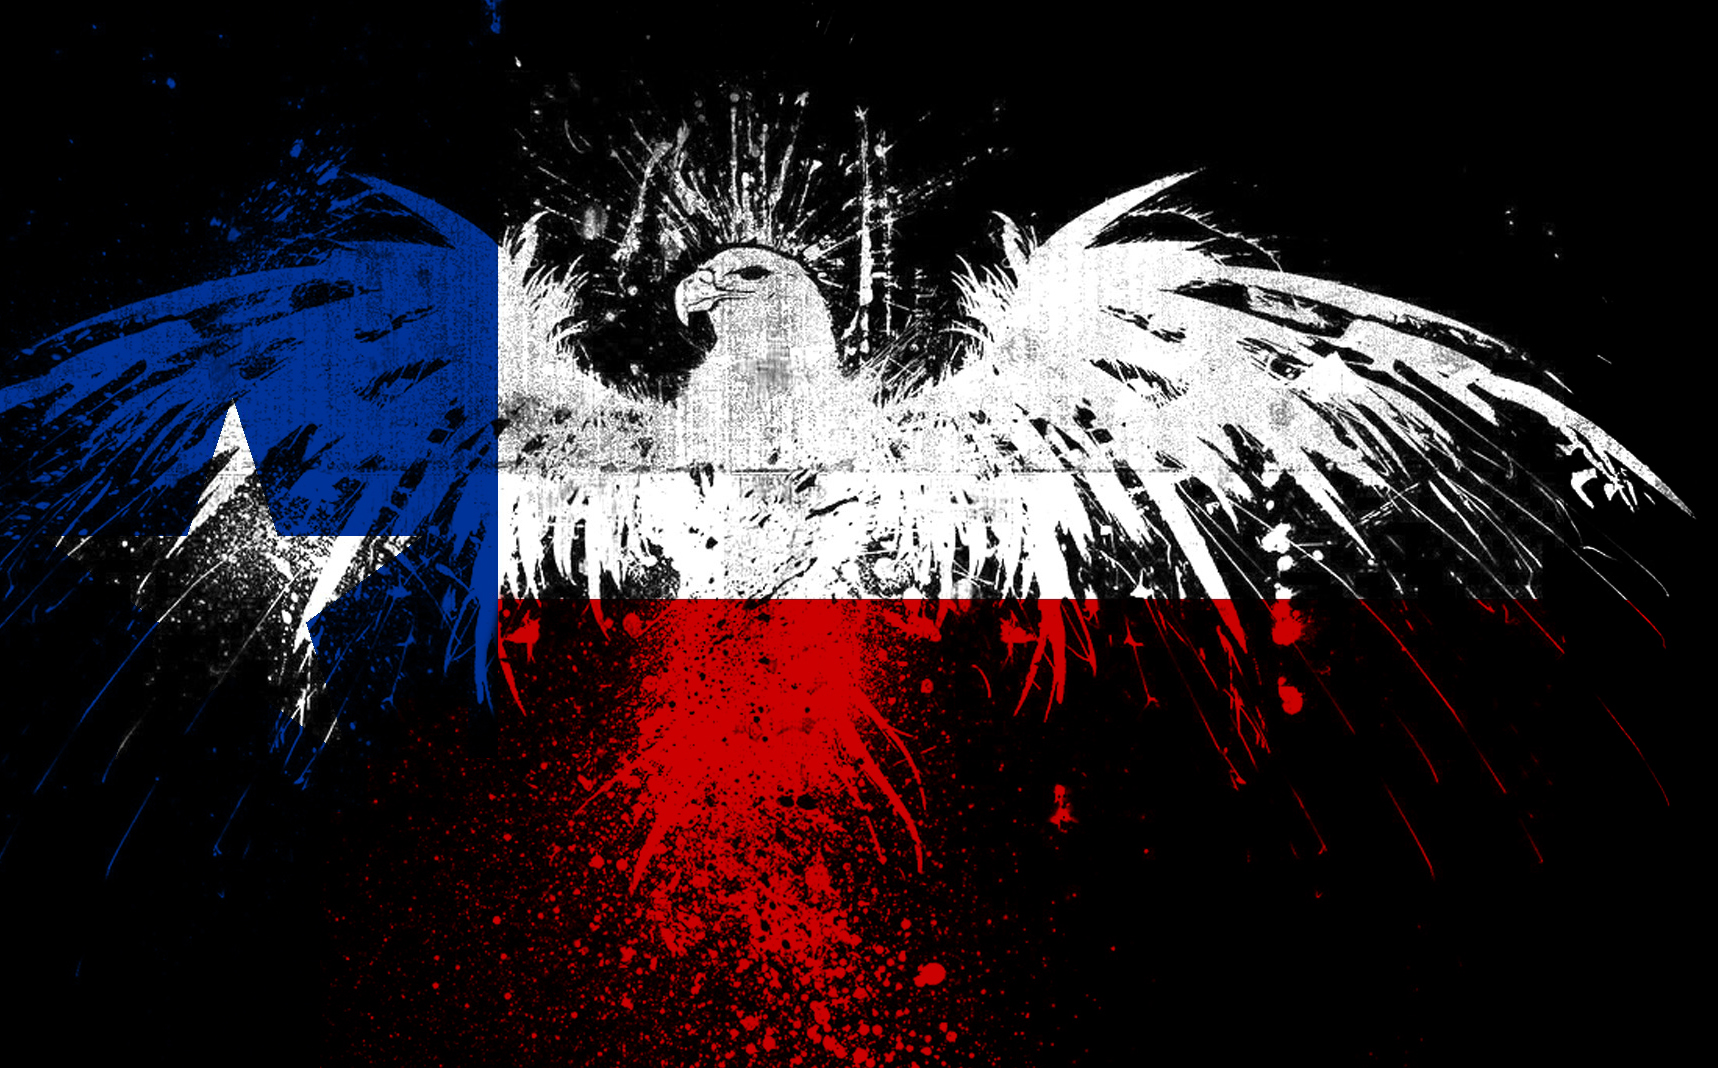 Free Download Texas Eagle Just Because Like This One High Hd